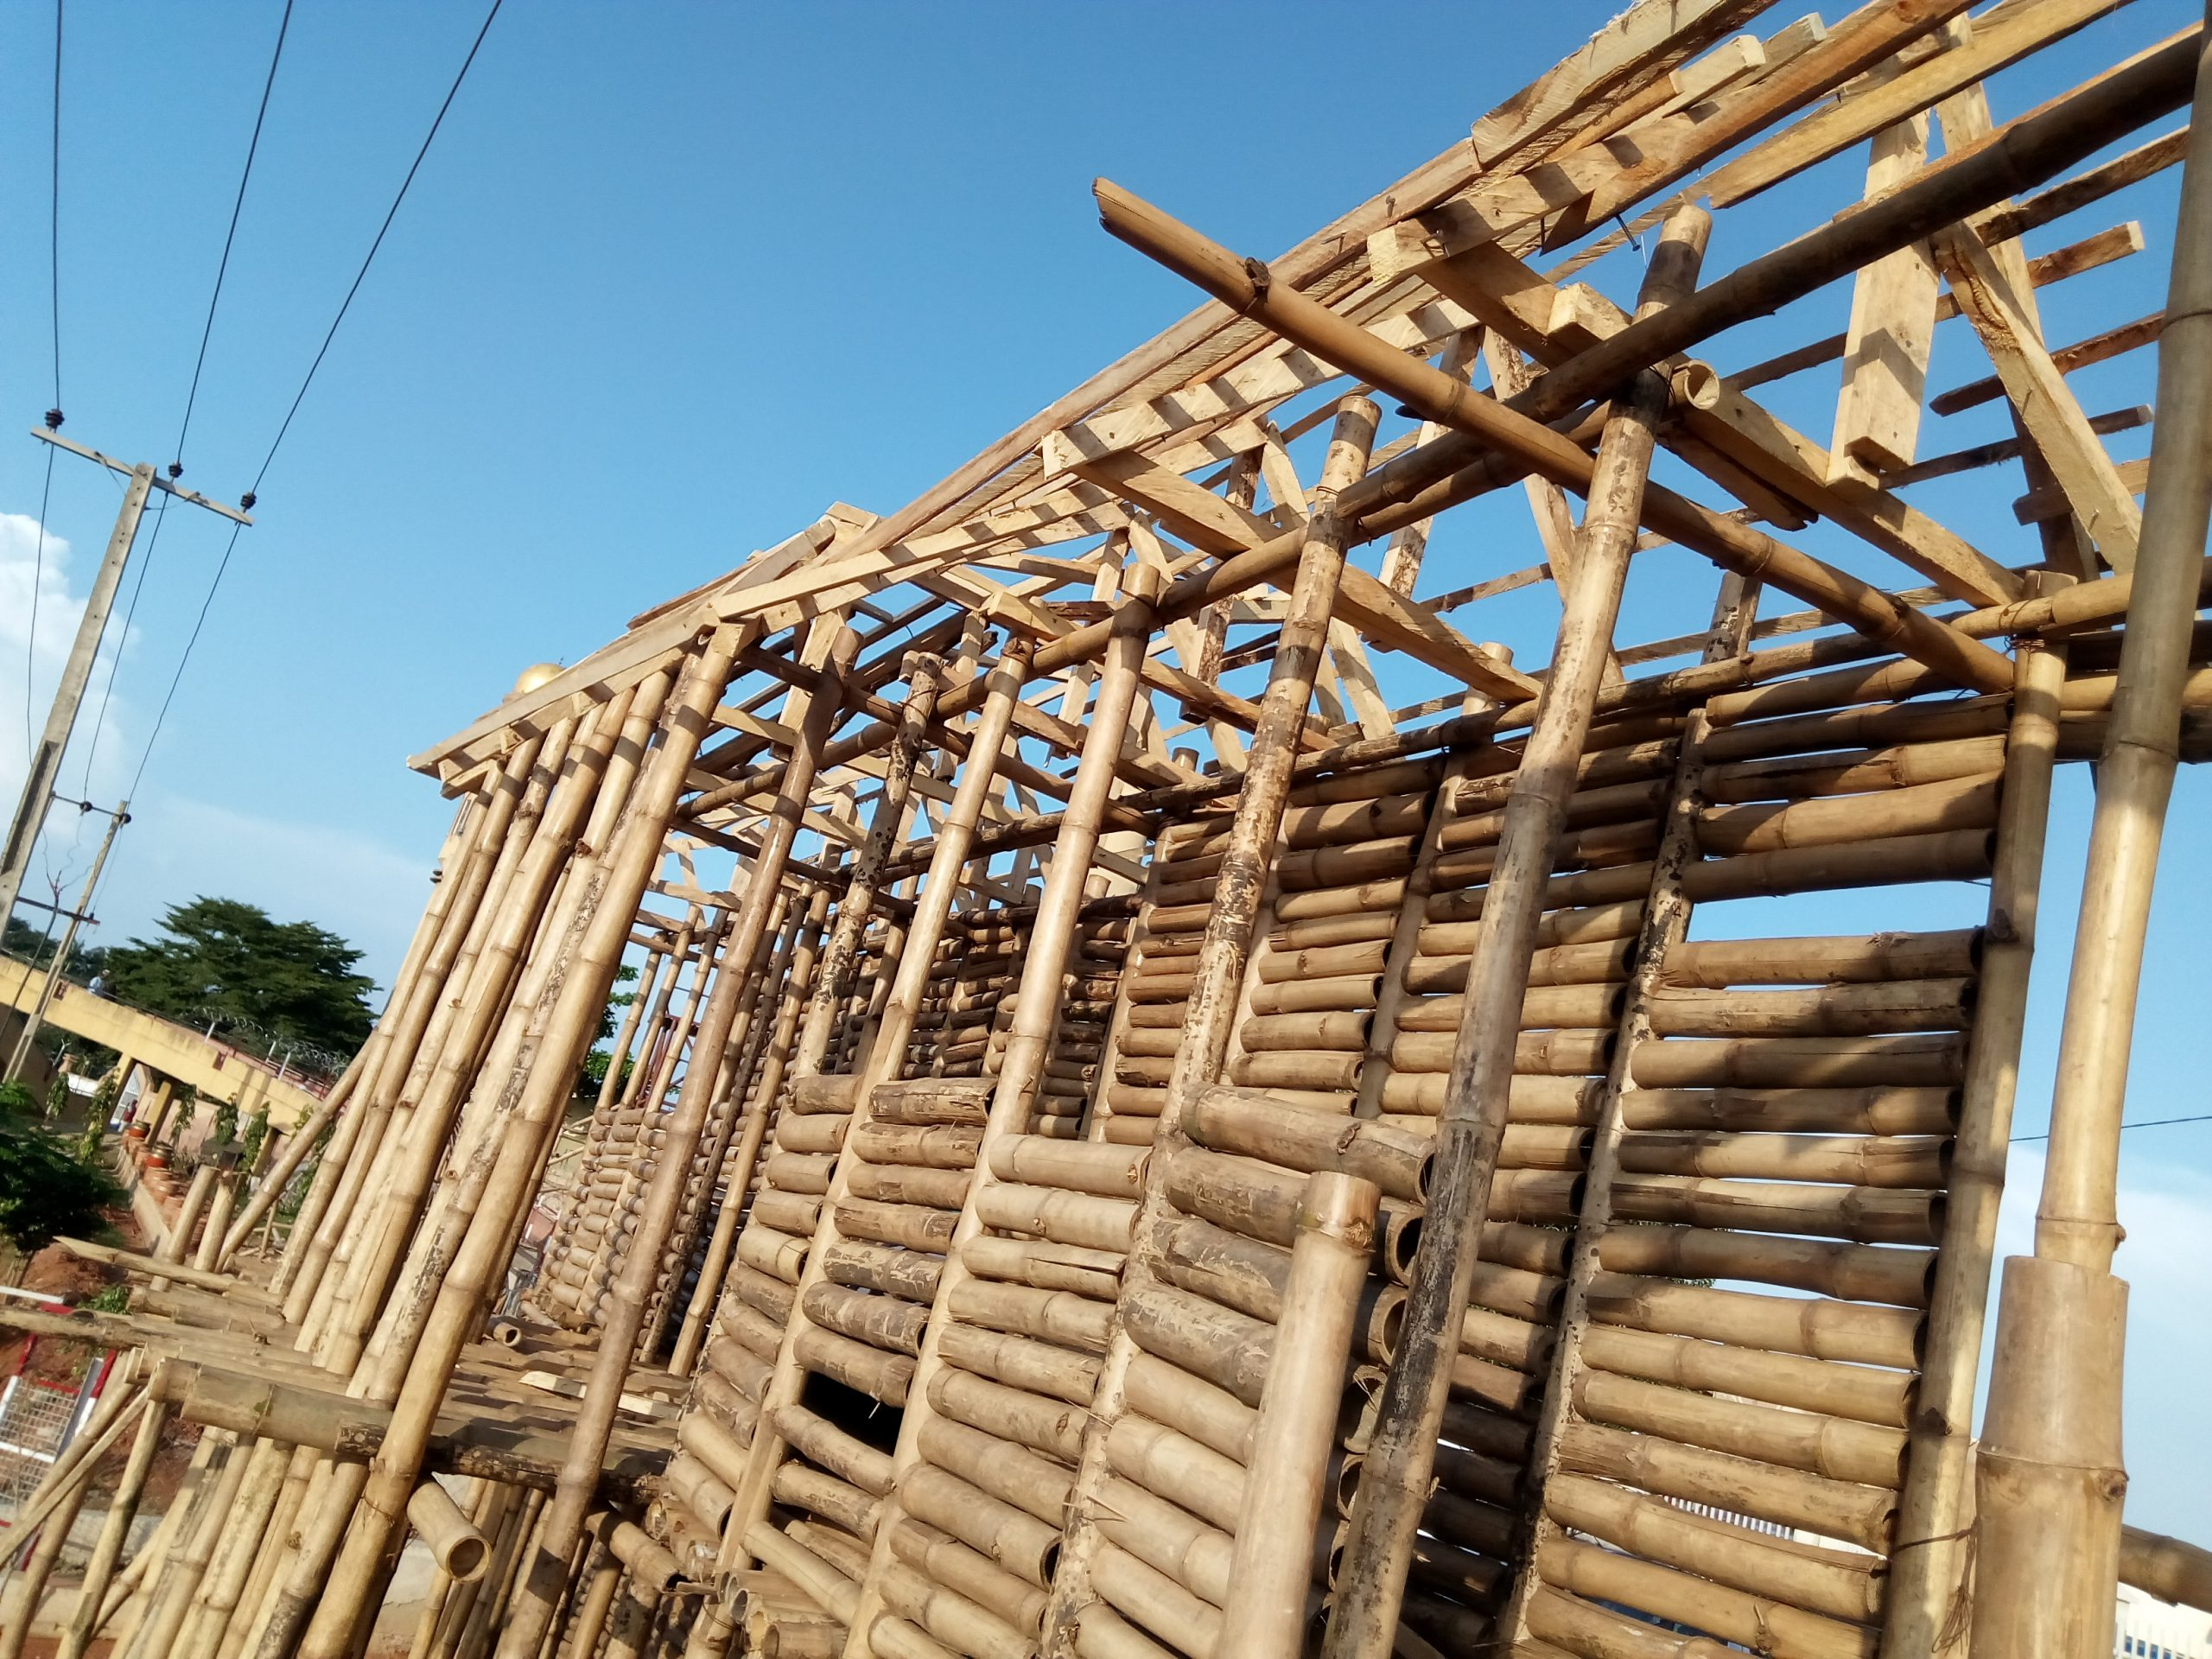 Nigerian horticulturist constructs storey  building with bamboo trees.